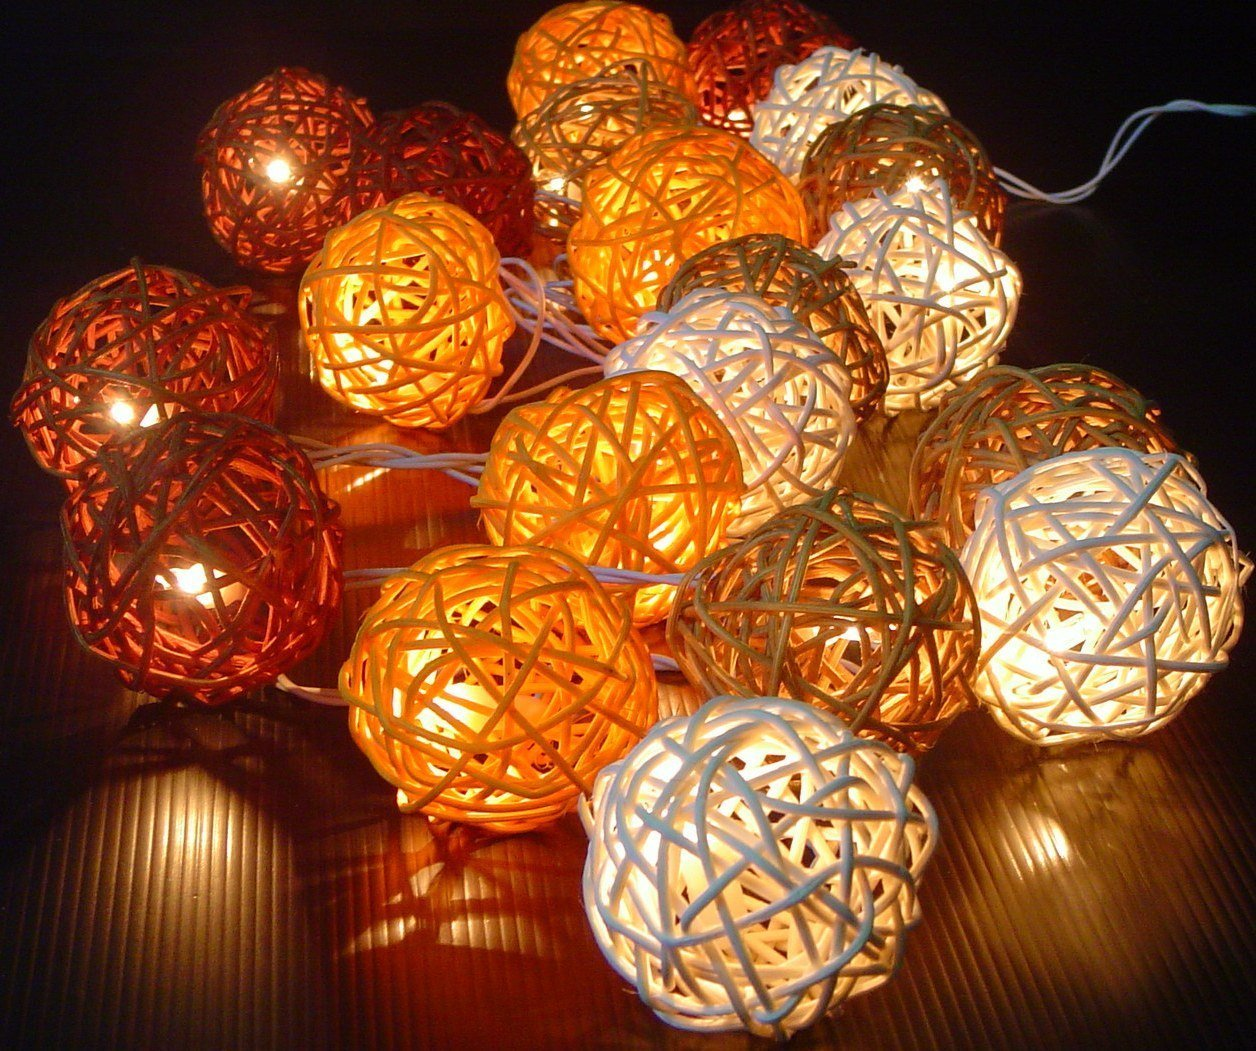 Storm Autumn Browns Rattan Cane Battery Powered Led Wooden Ball Fairy Light String 3m (9.9 Feet) Long by GLOWFROST TM by GLOWFROST TM